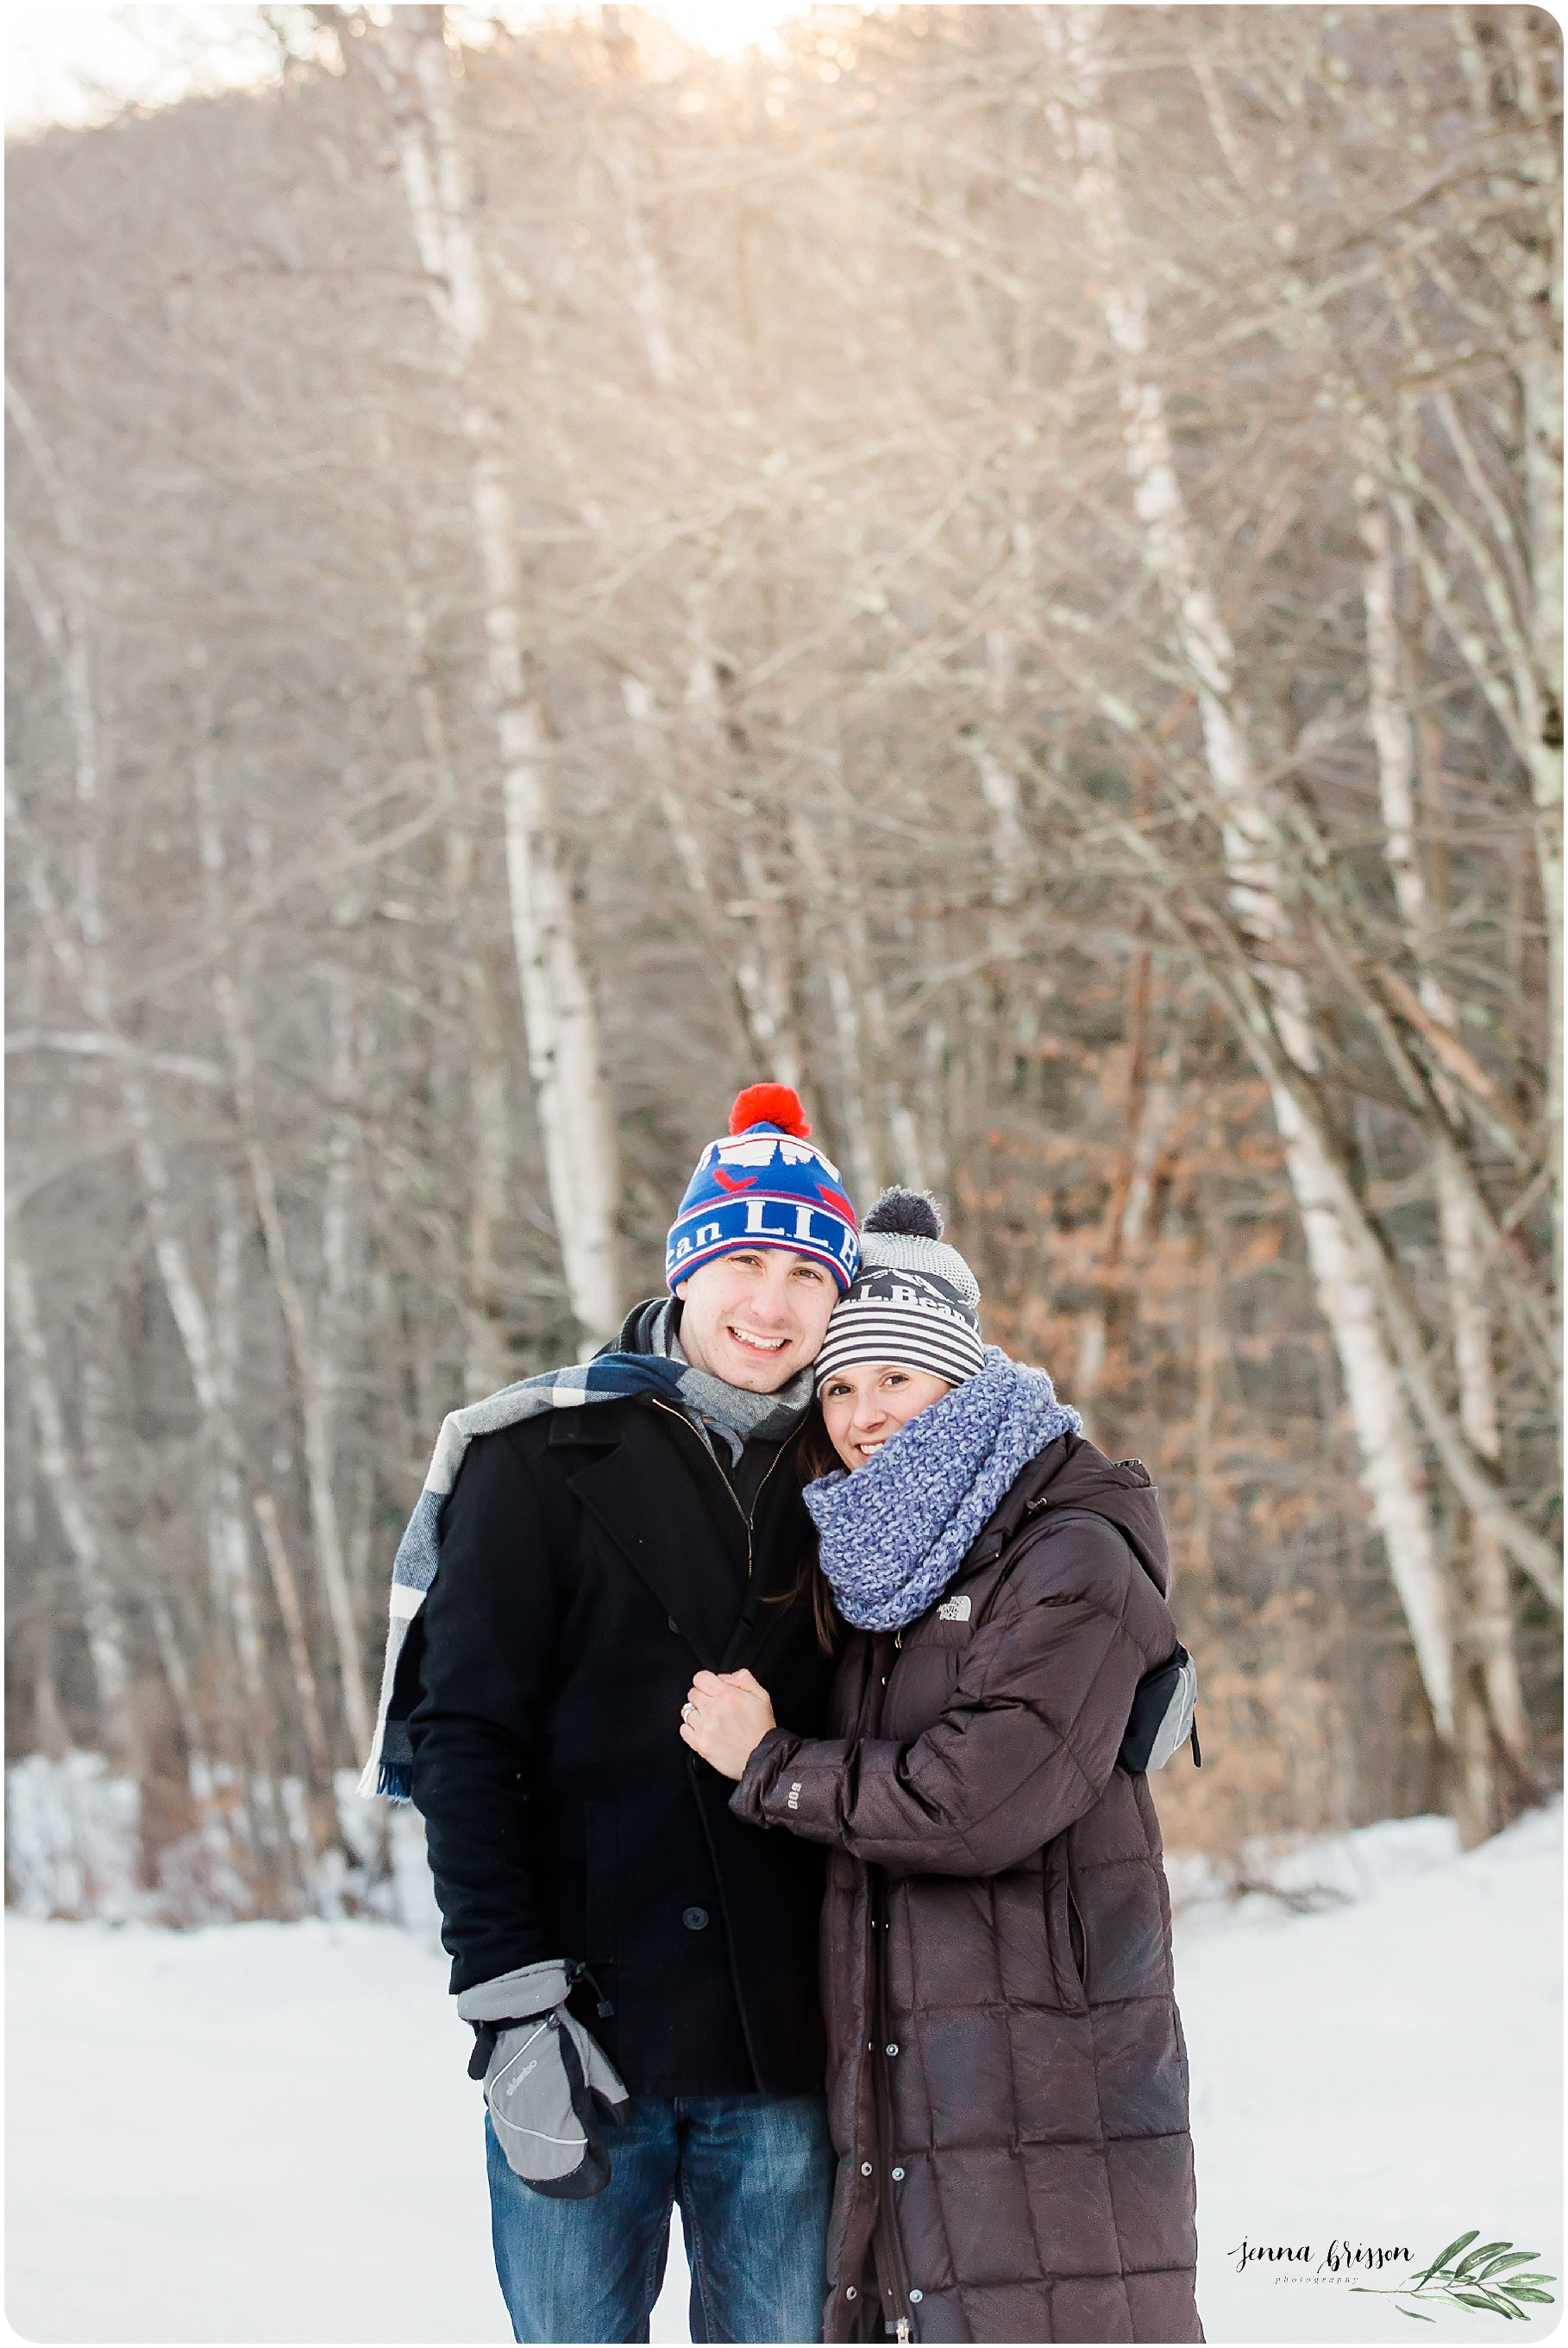 Vermont Winter Proposal Session - Jenna Brisson Photography